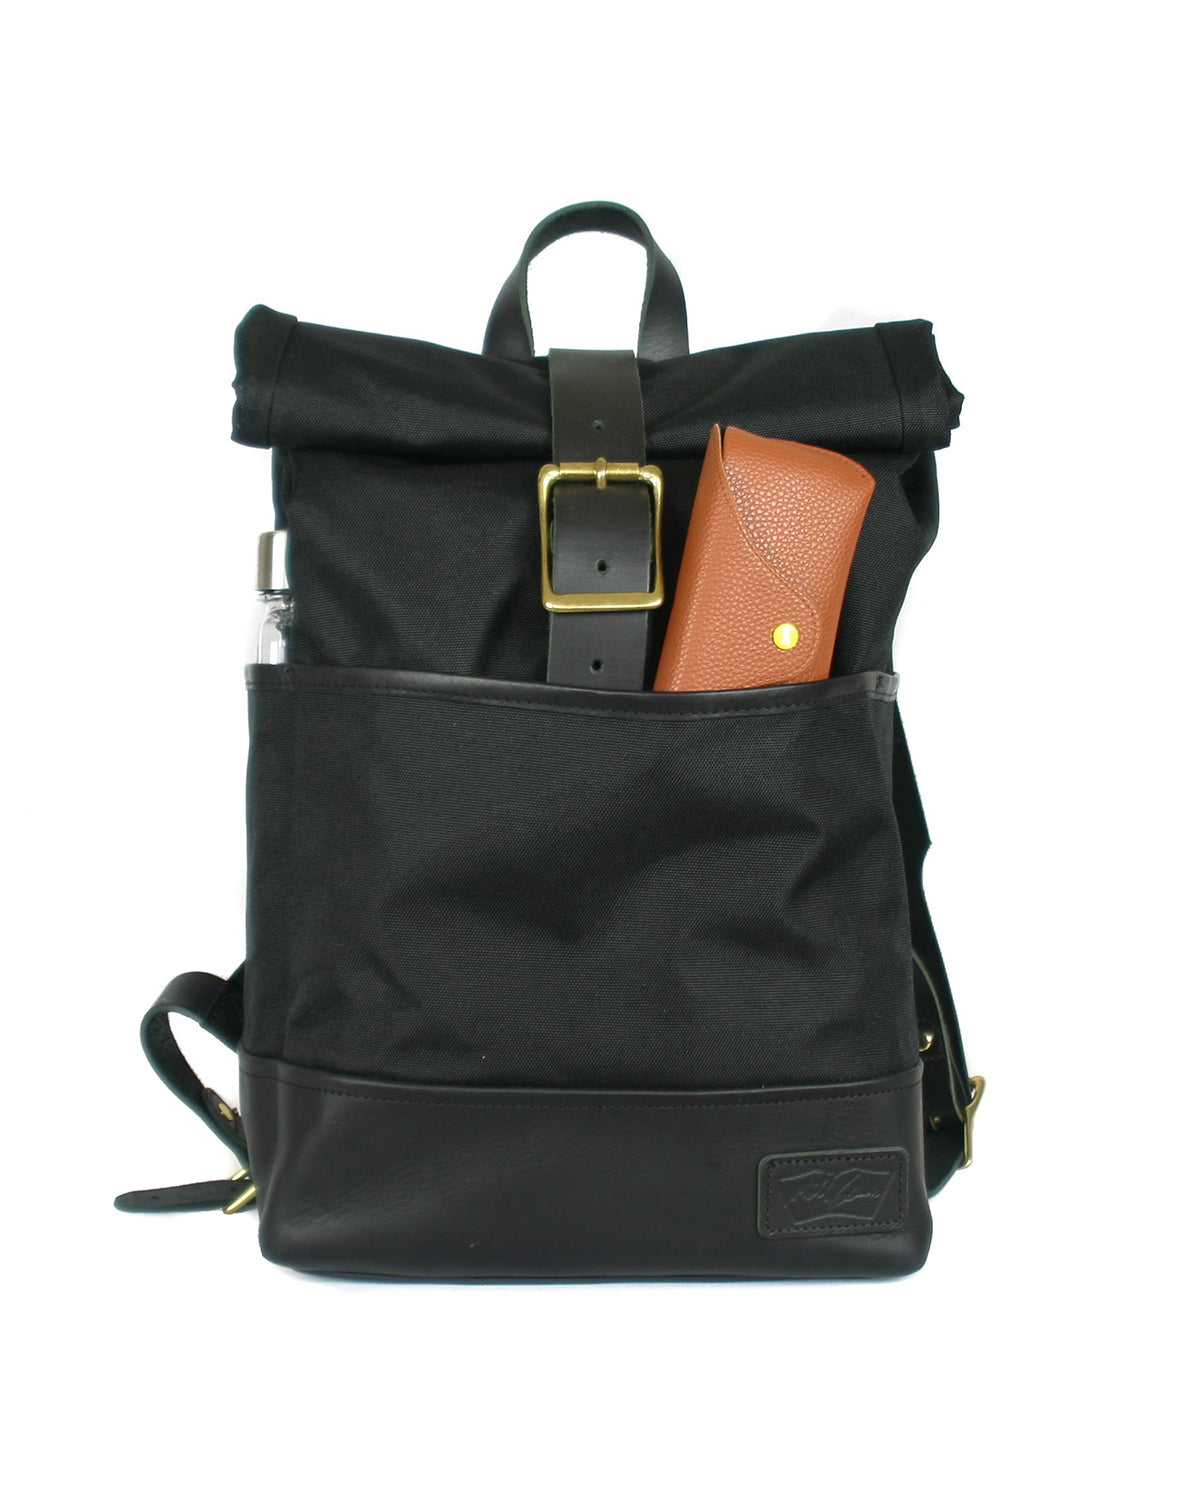 Daypack in All Black - Motley Goods